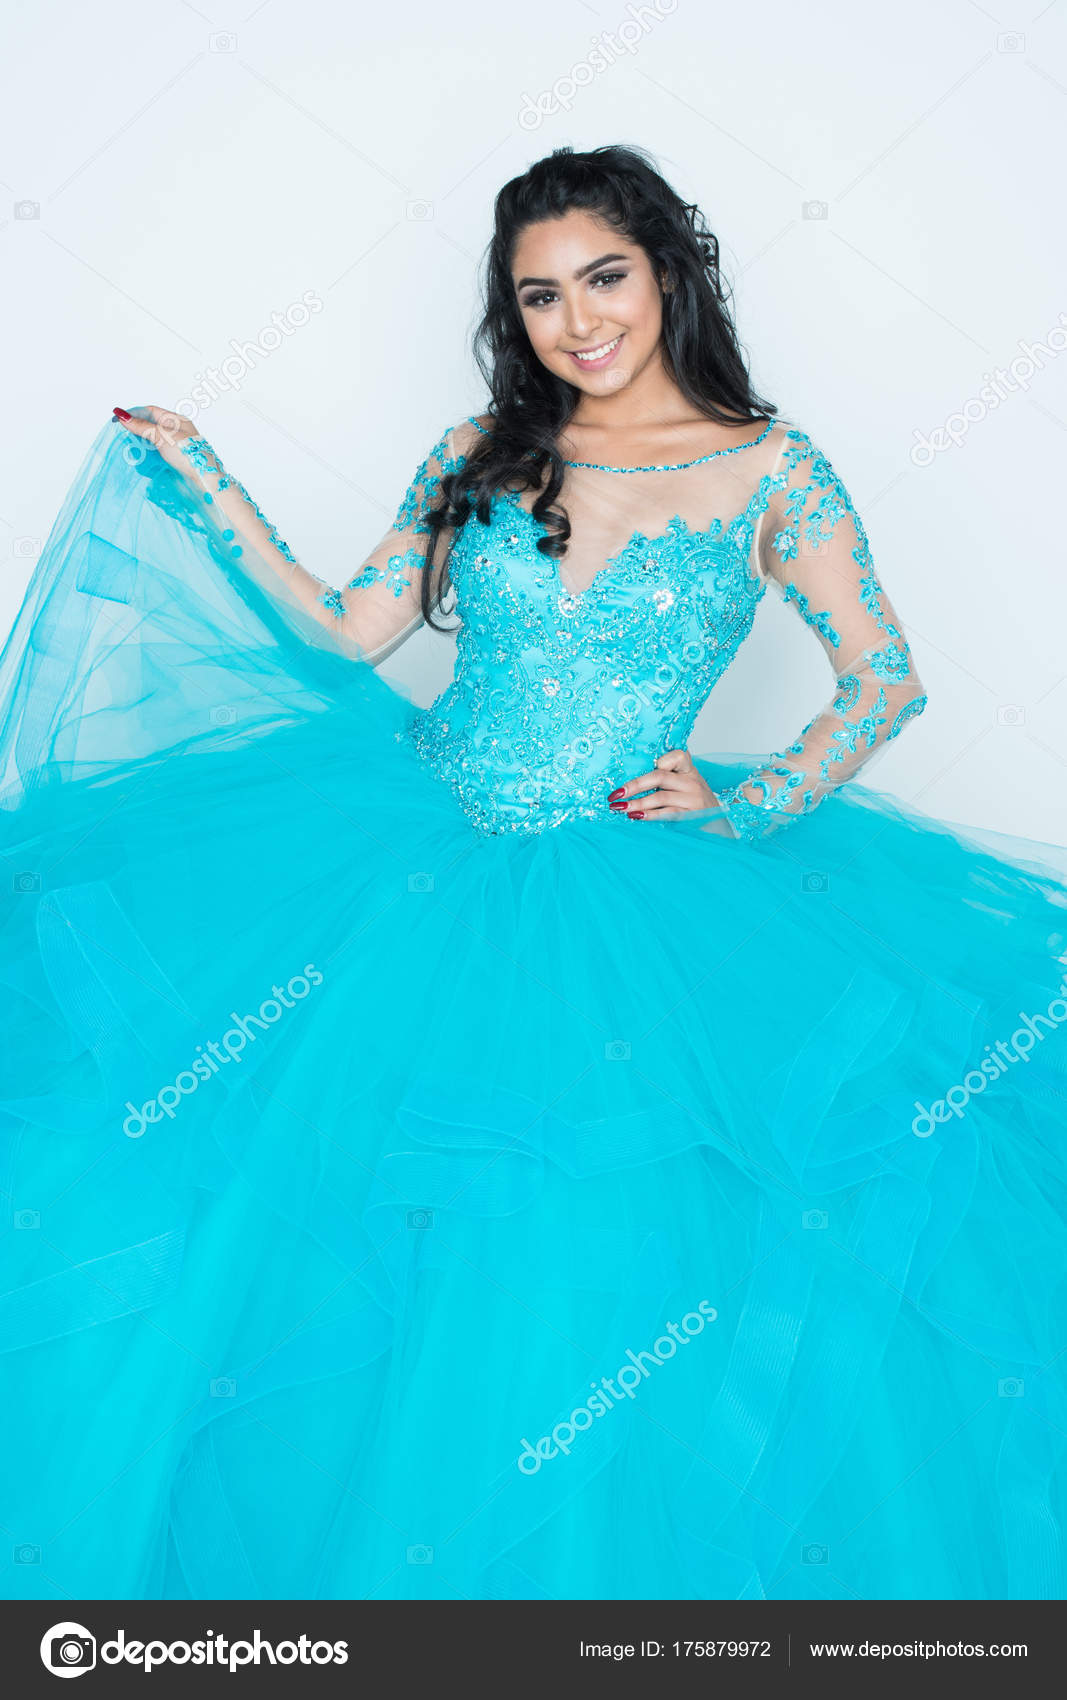 Teen In Prom Kleid — Stockfoto © rmarmion #175879972